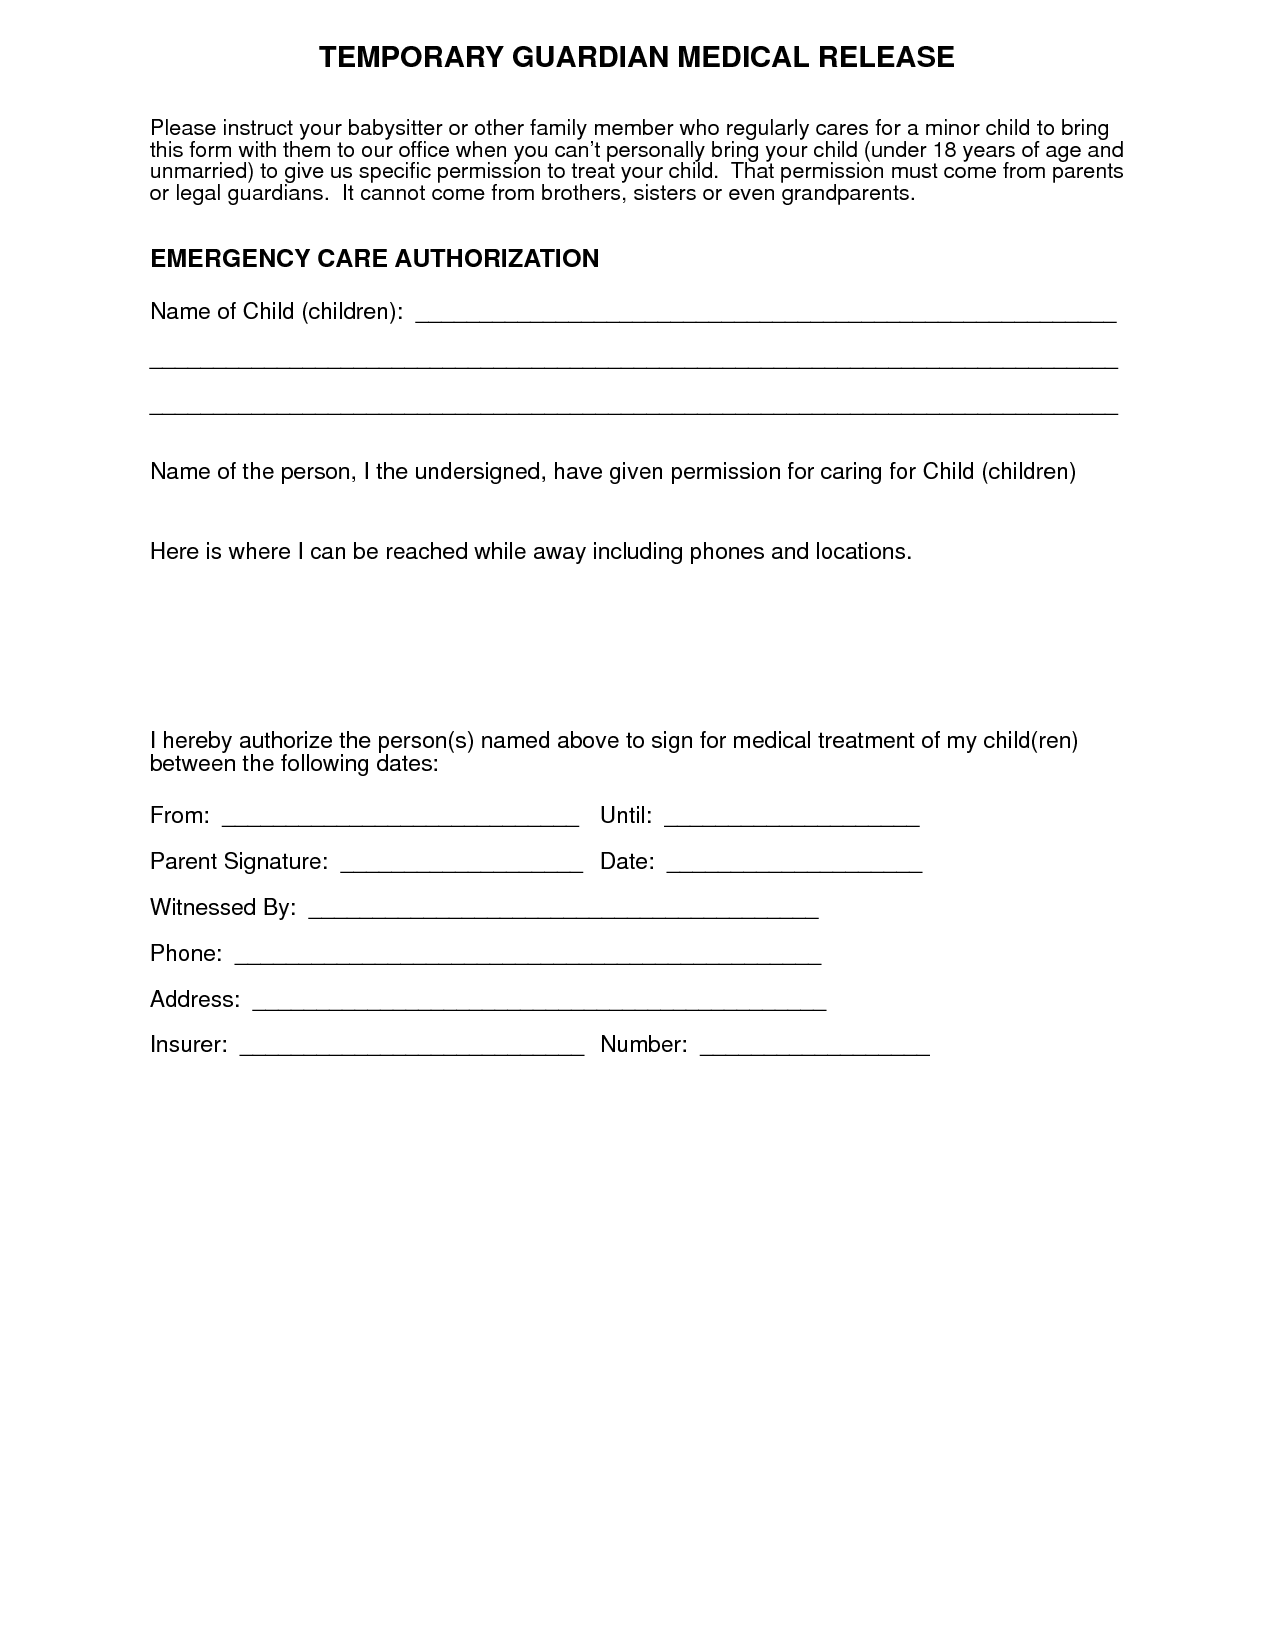 request and authorization forms templates medical printables medical authorization form for grandparents for more medical release form grandparents